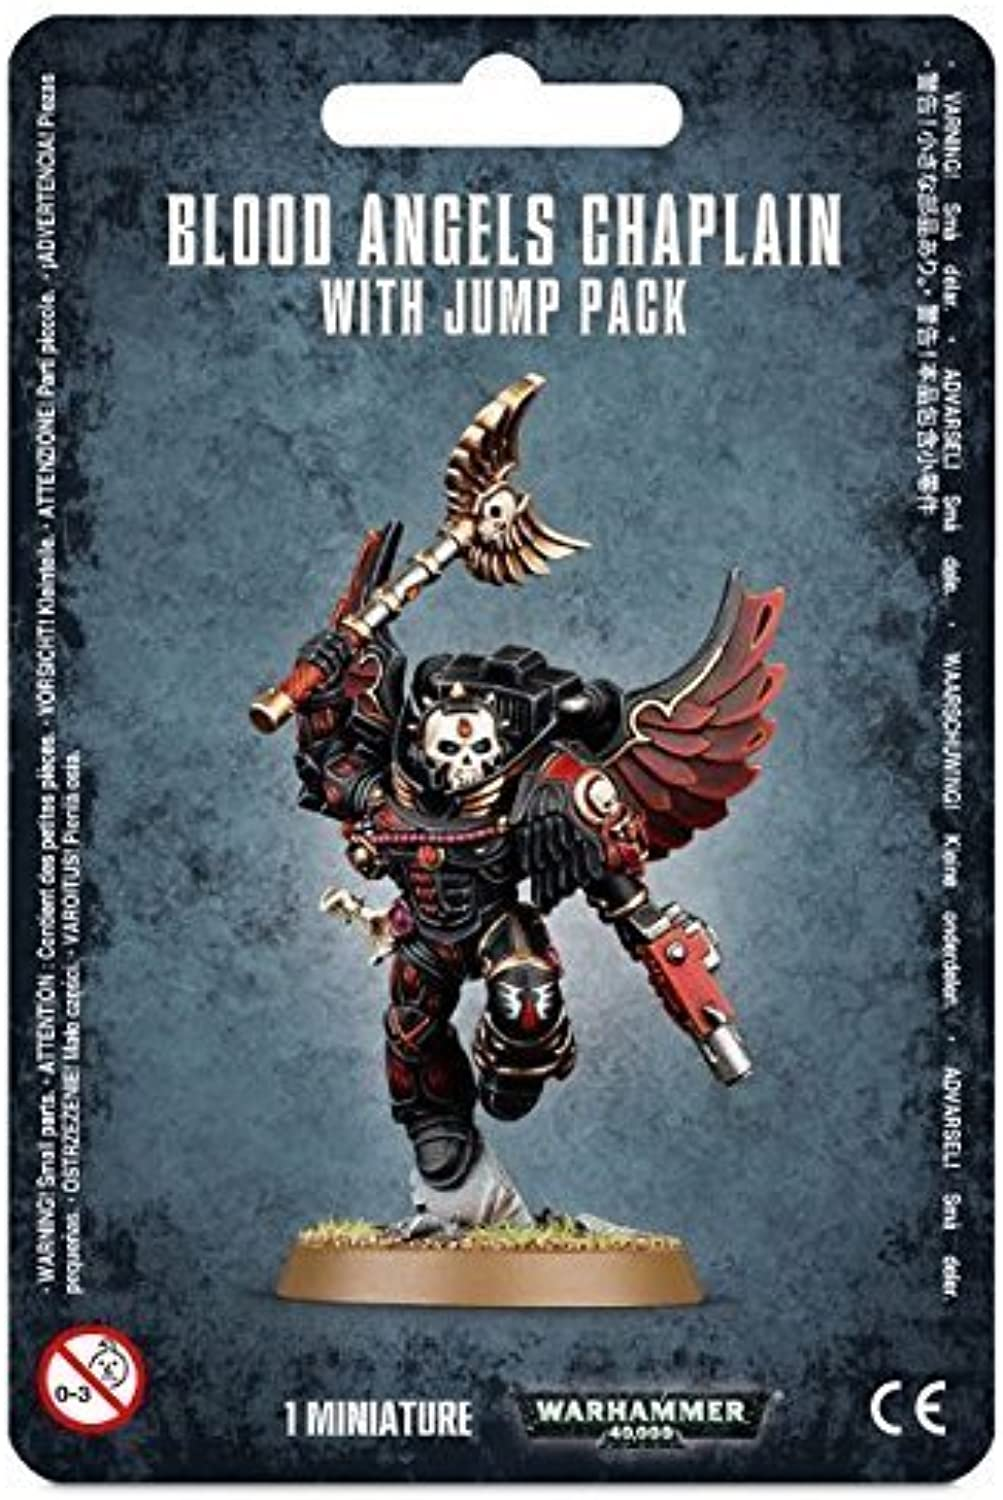 Warhammer 40k Blood angels Chaplain with Jump Pack by by by Warhammer a5f051